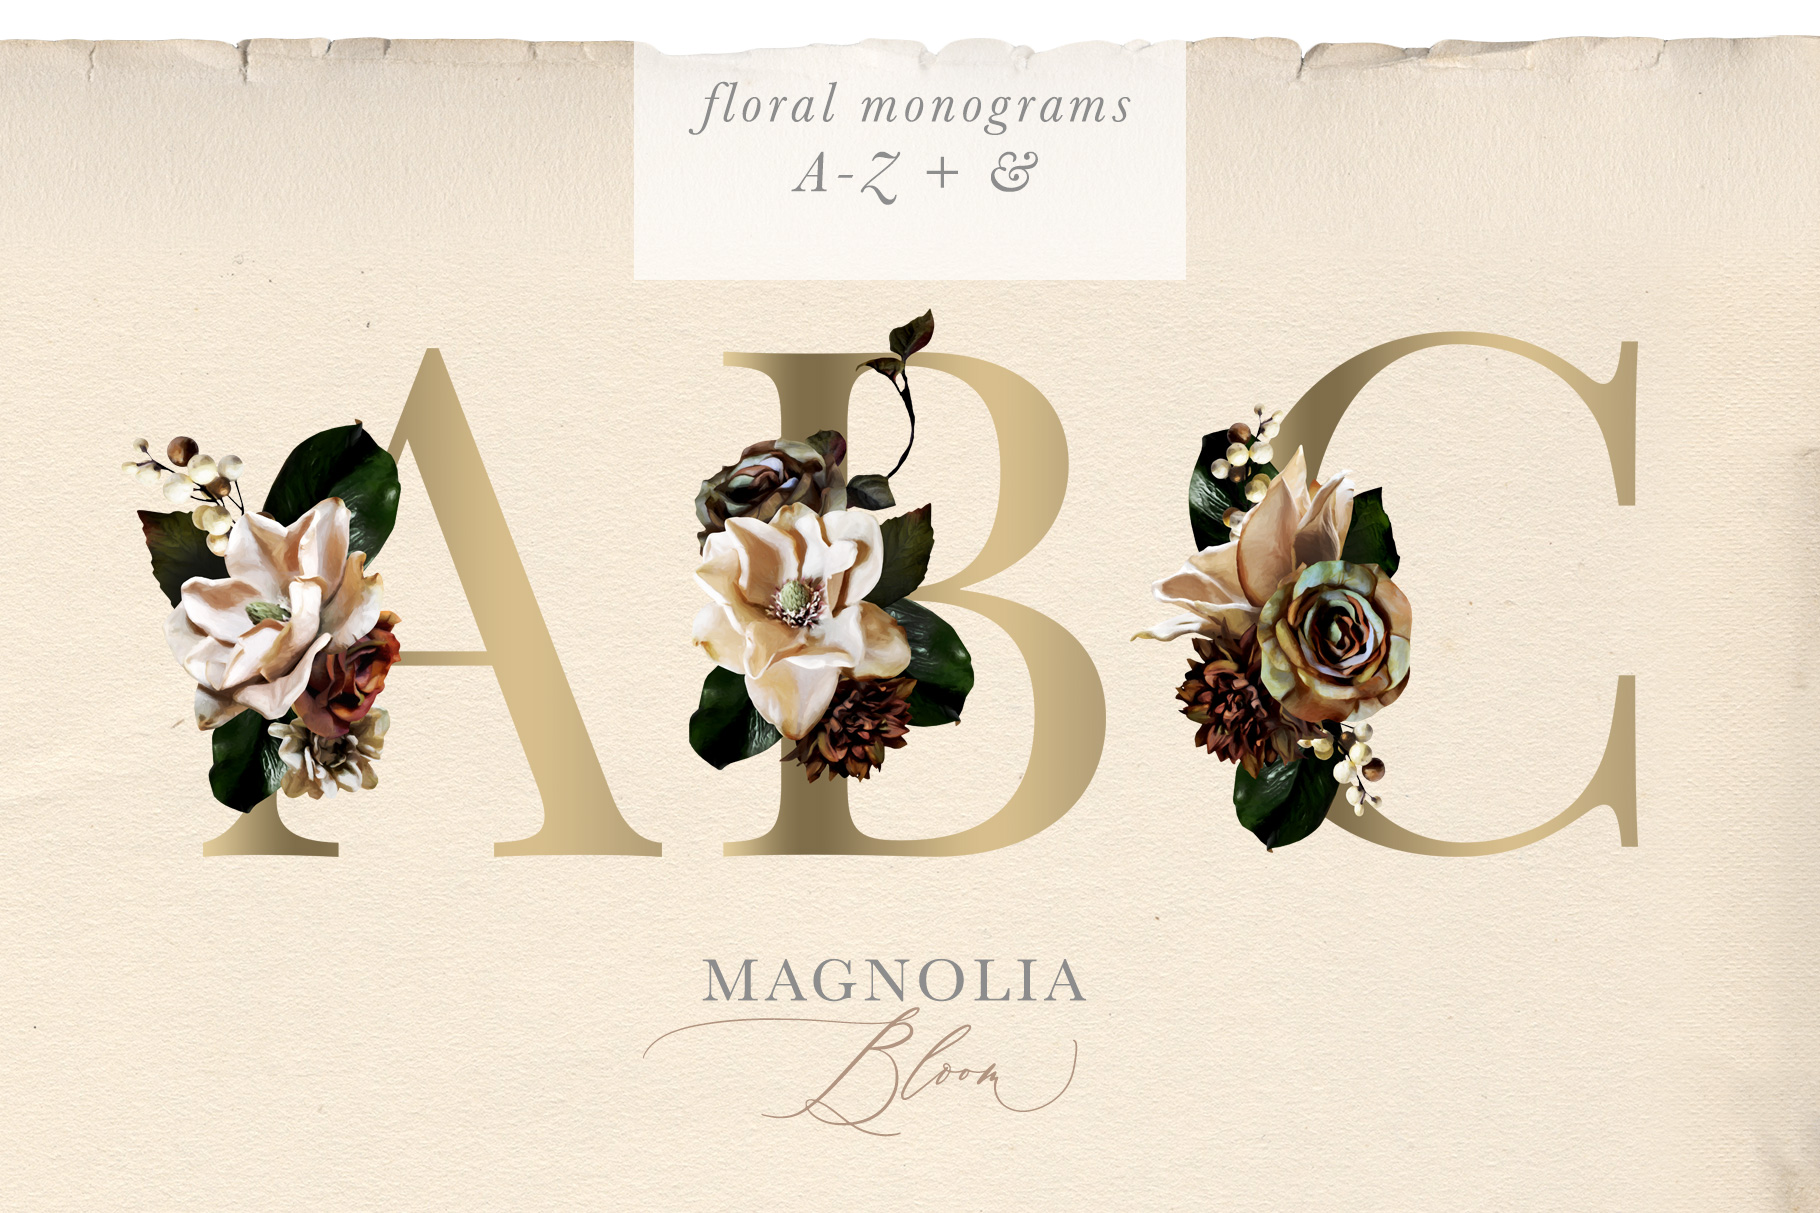 Magnolia Bloom Flower & Monogram Graphics